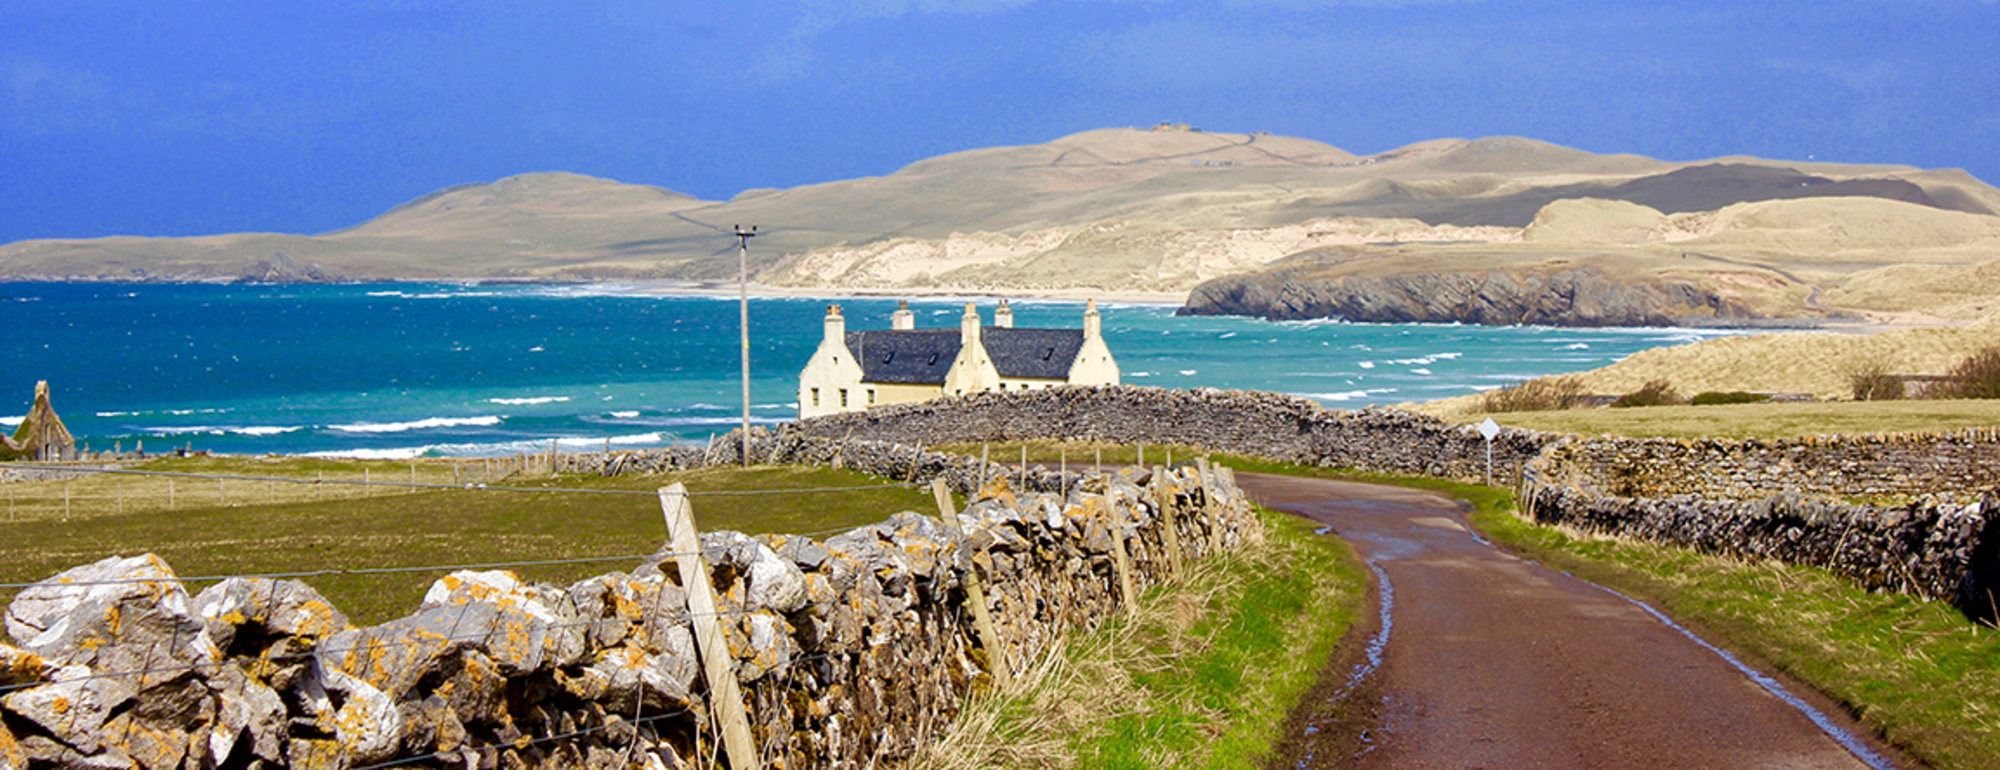 Sfeerimpressie Isle of Harris